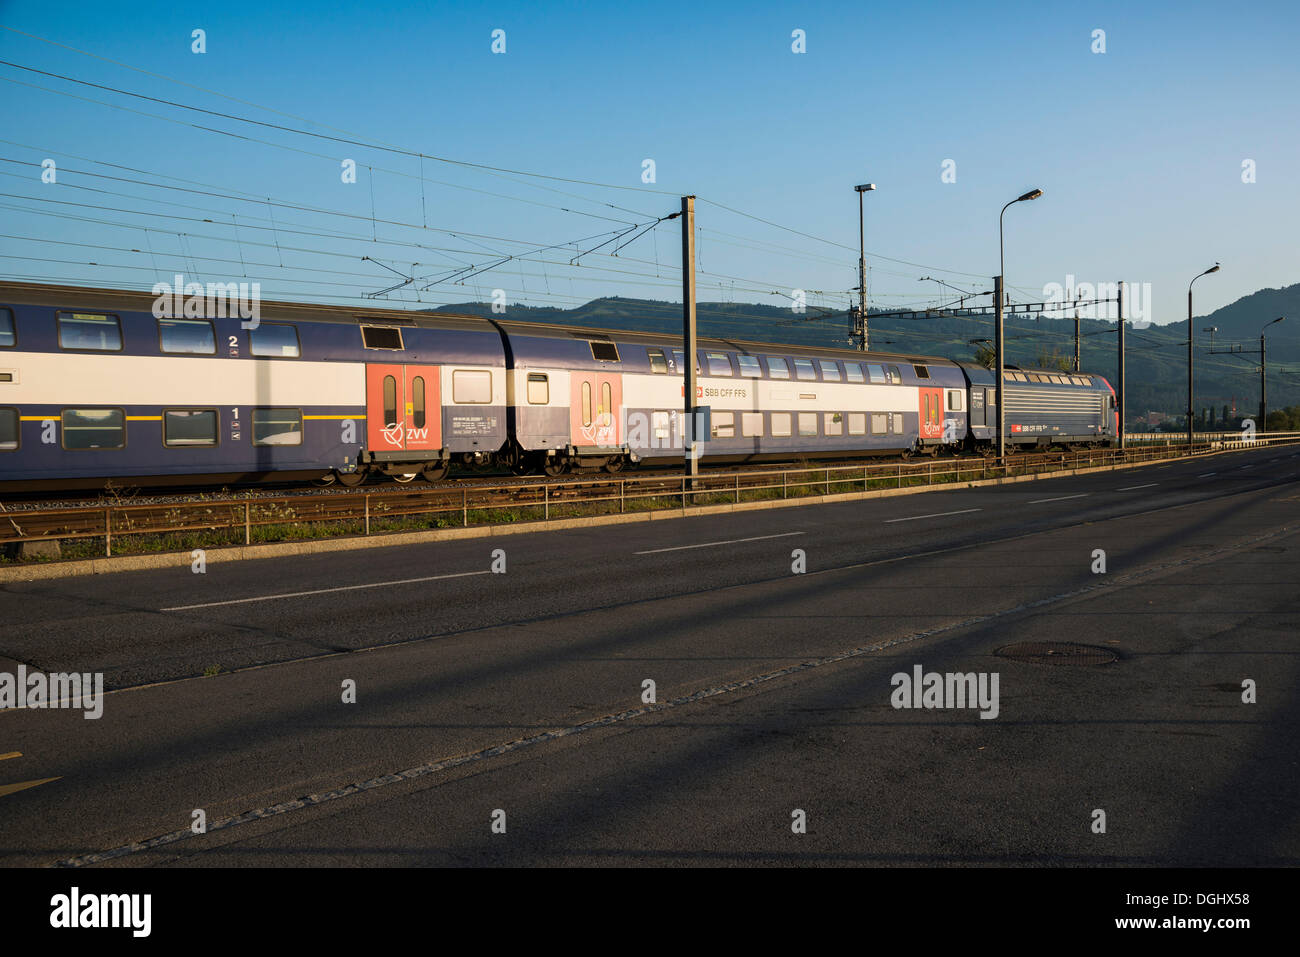 SBB train at the dam en route to Rapperswil, Swiss federal railways, Rapperswil, Rapperswil-Jona, Canton of St. Gallen - Stock Image